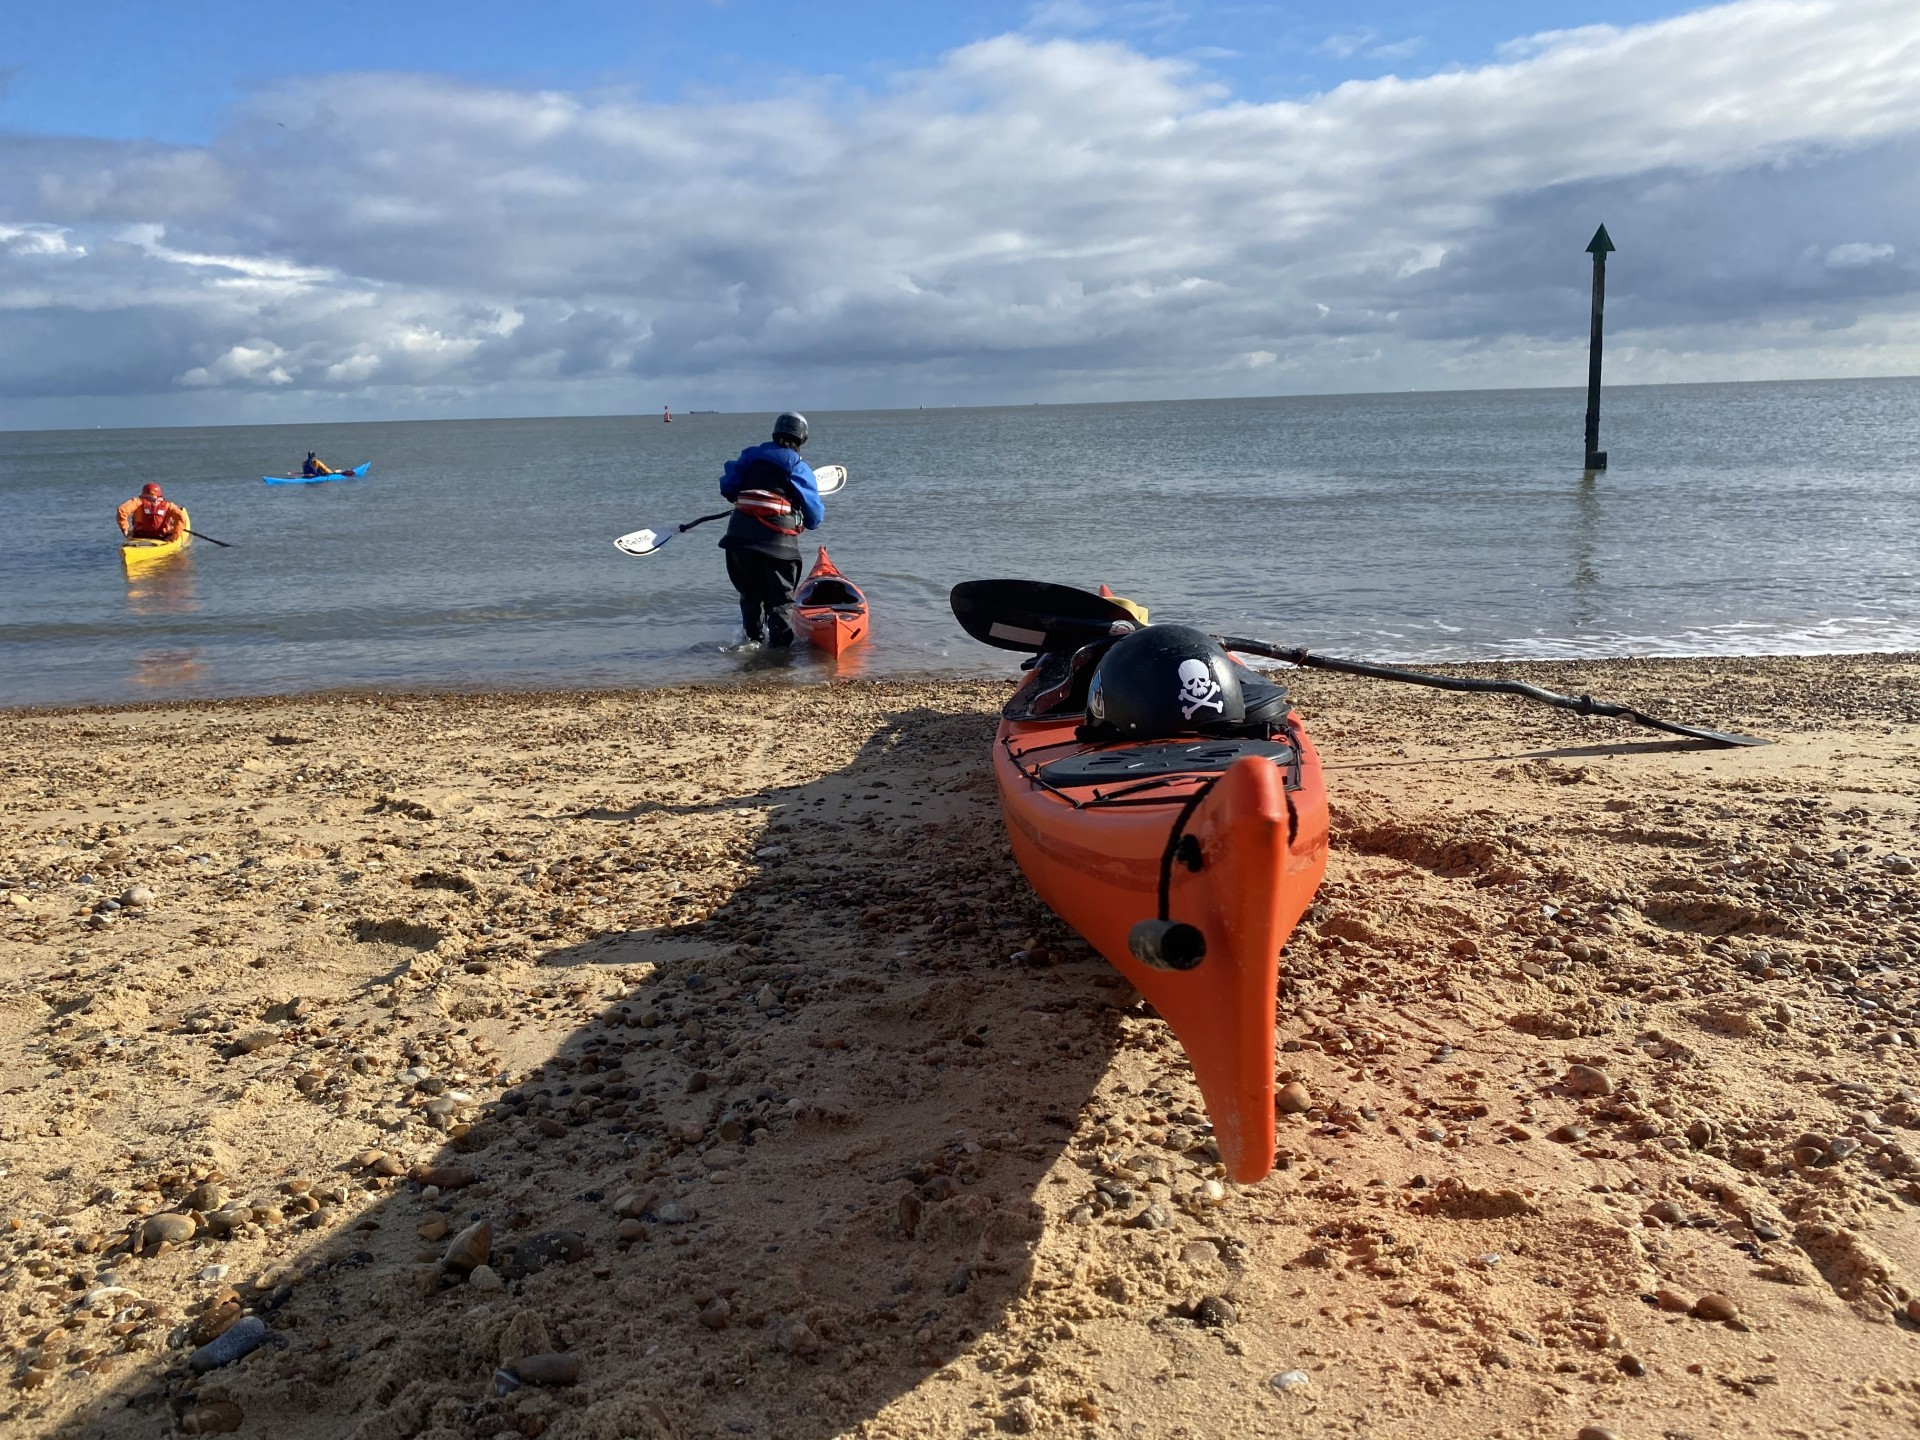 Sea kayakers launching in flat, calm sea conditions